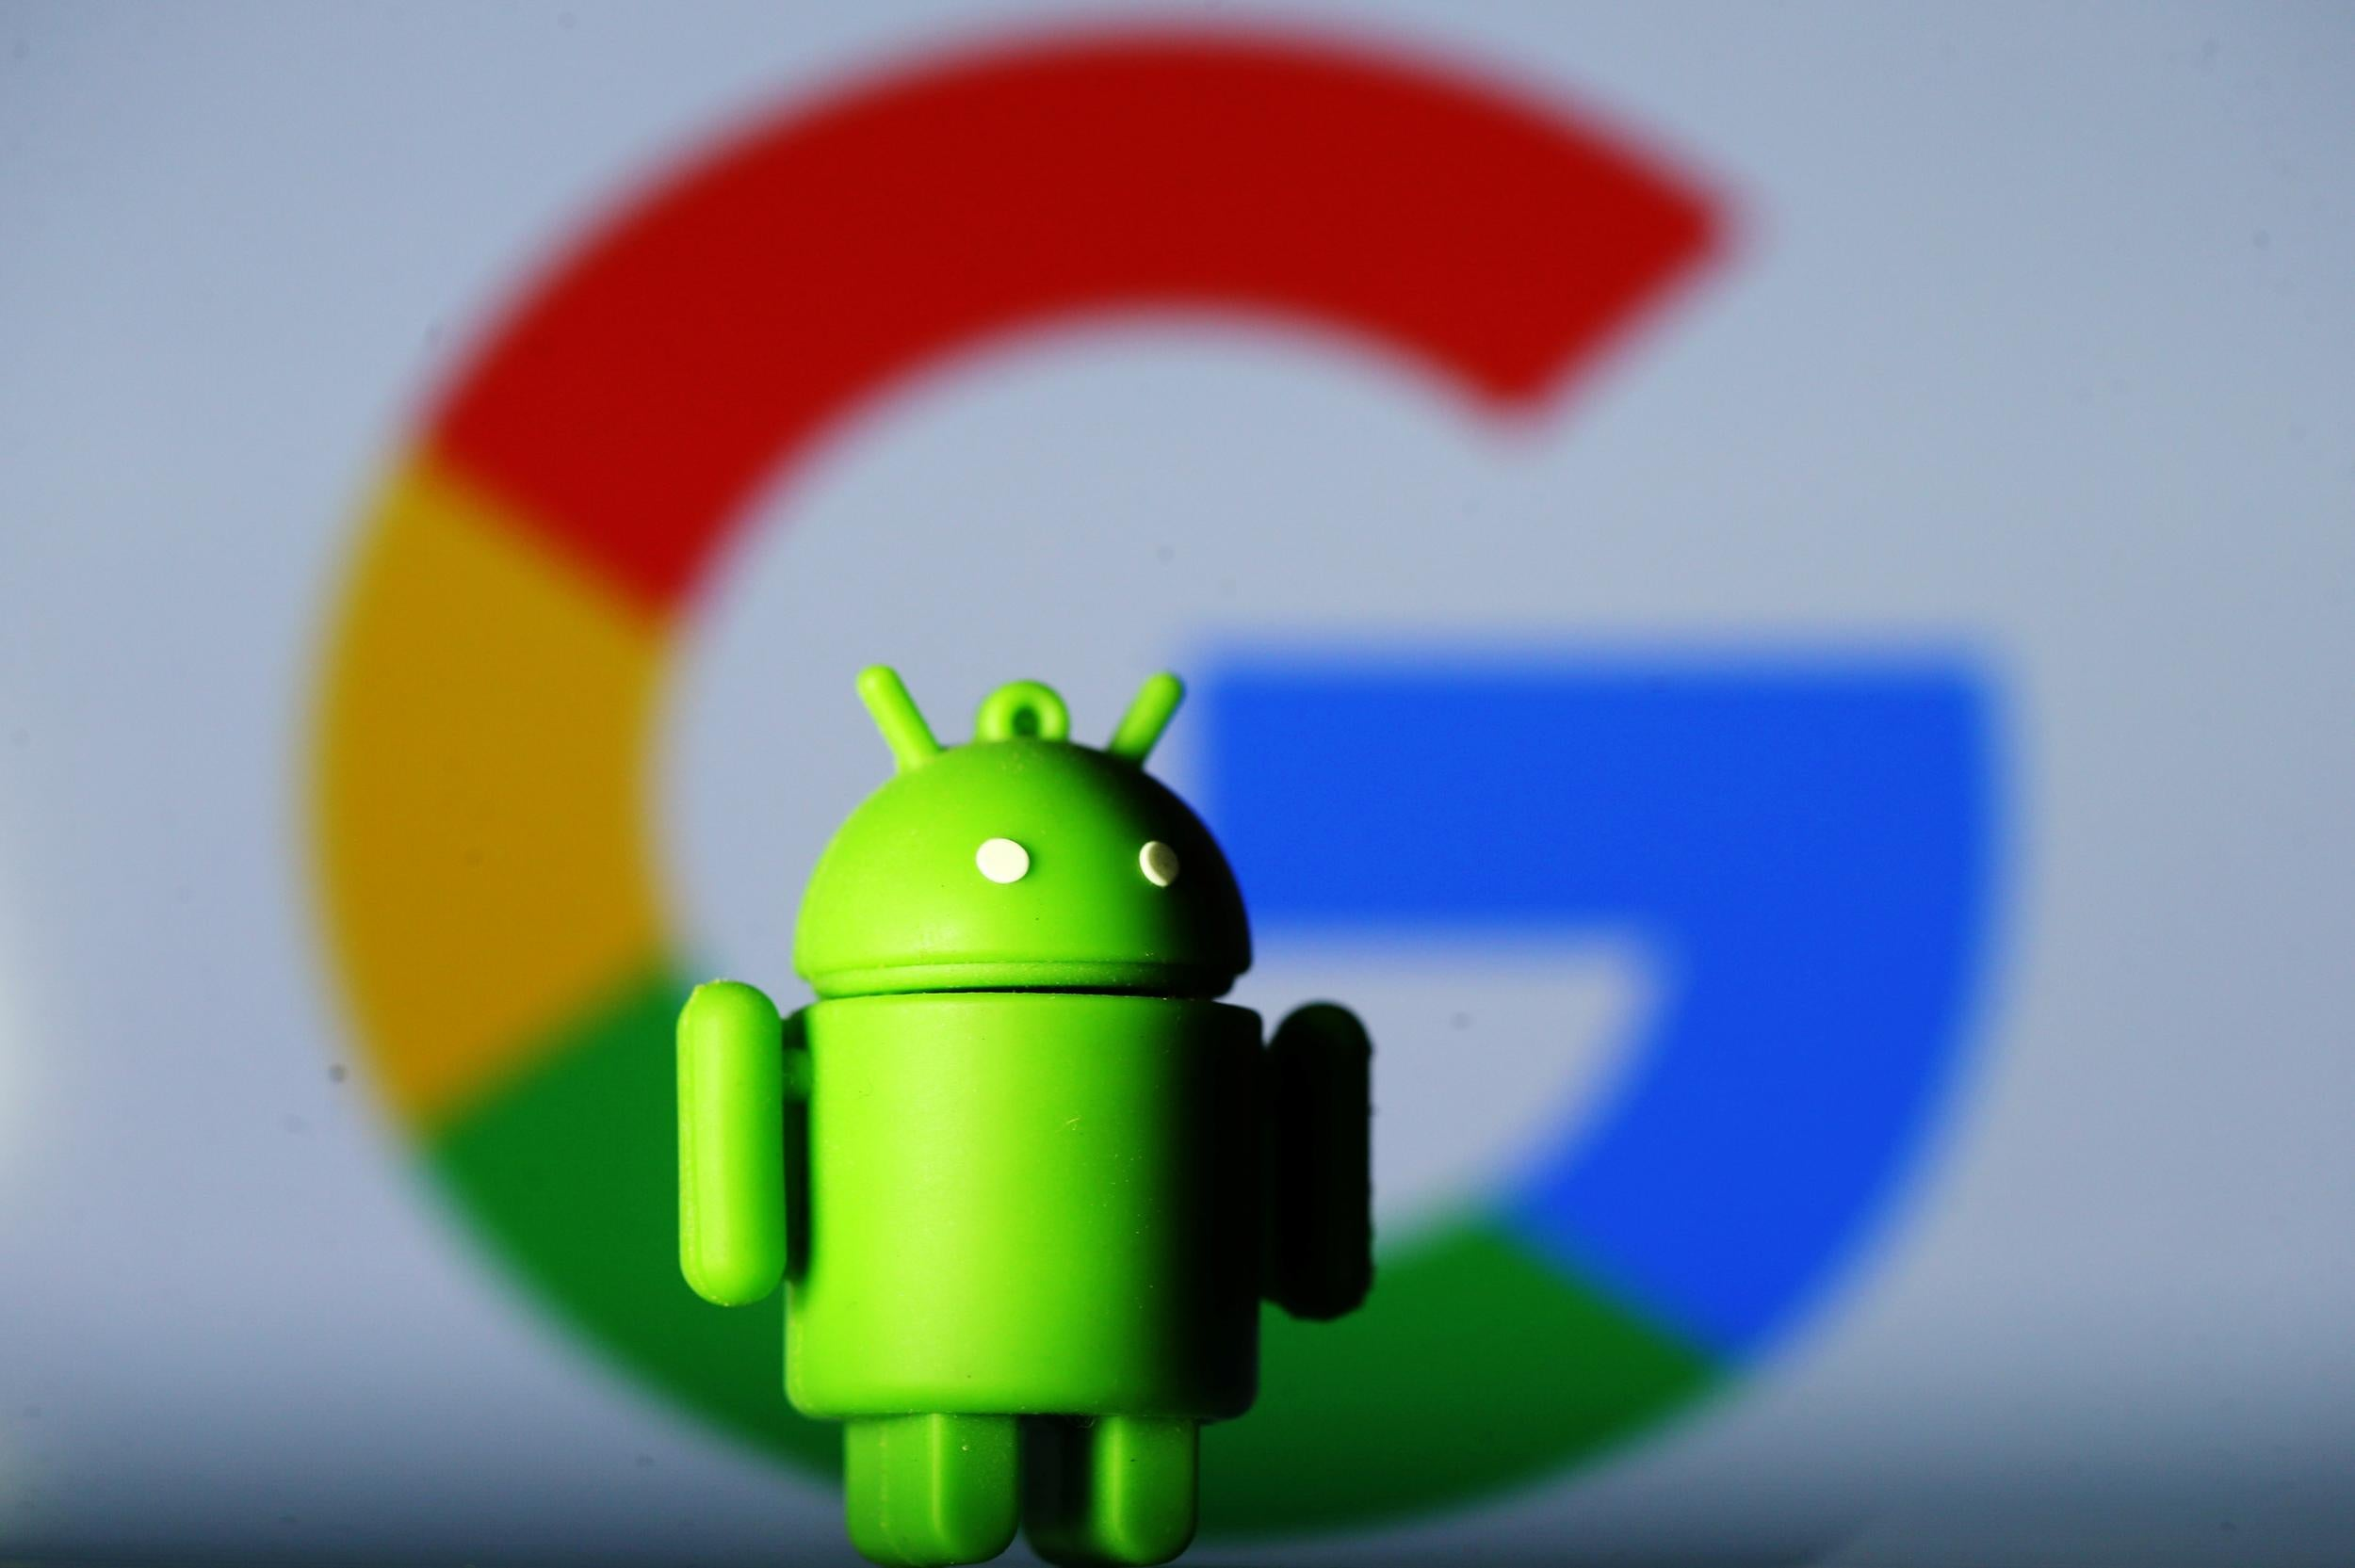 Android - latest news, breaking stories and comment - The